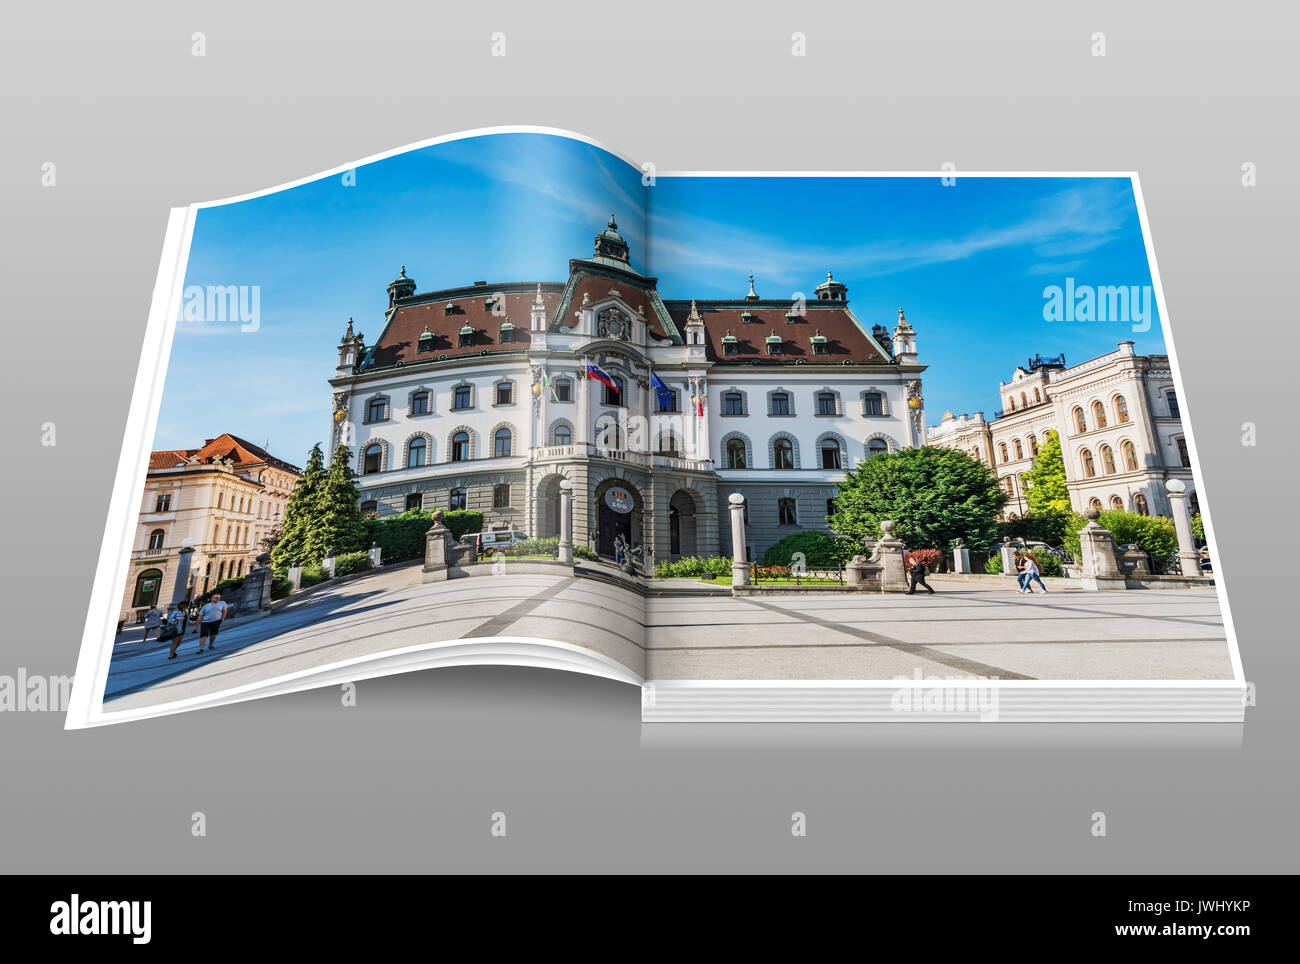 The University of Ljubljana. The main building is located on the square Kongresni trg in the old town of Ljubljana, Slovenia, Europe - Stock Image